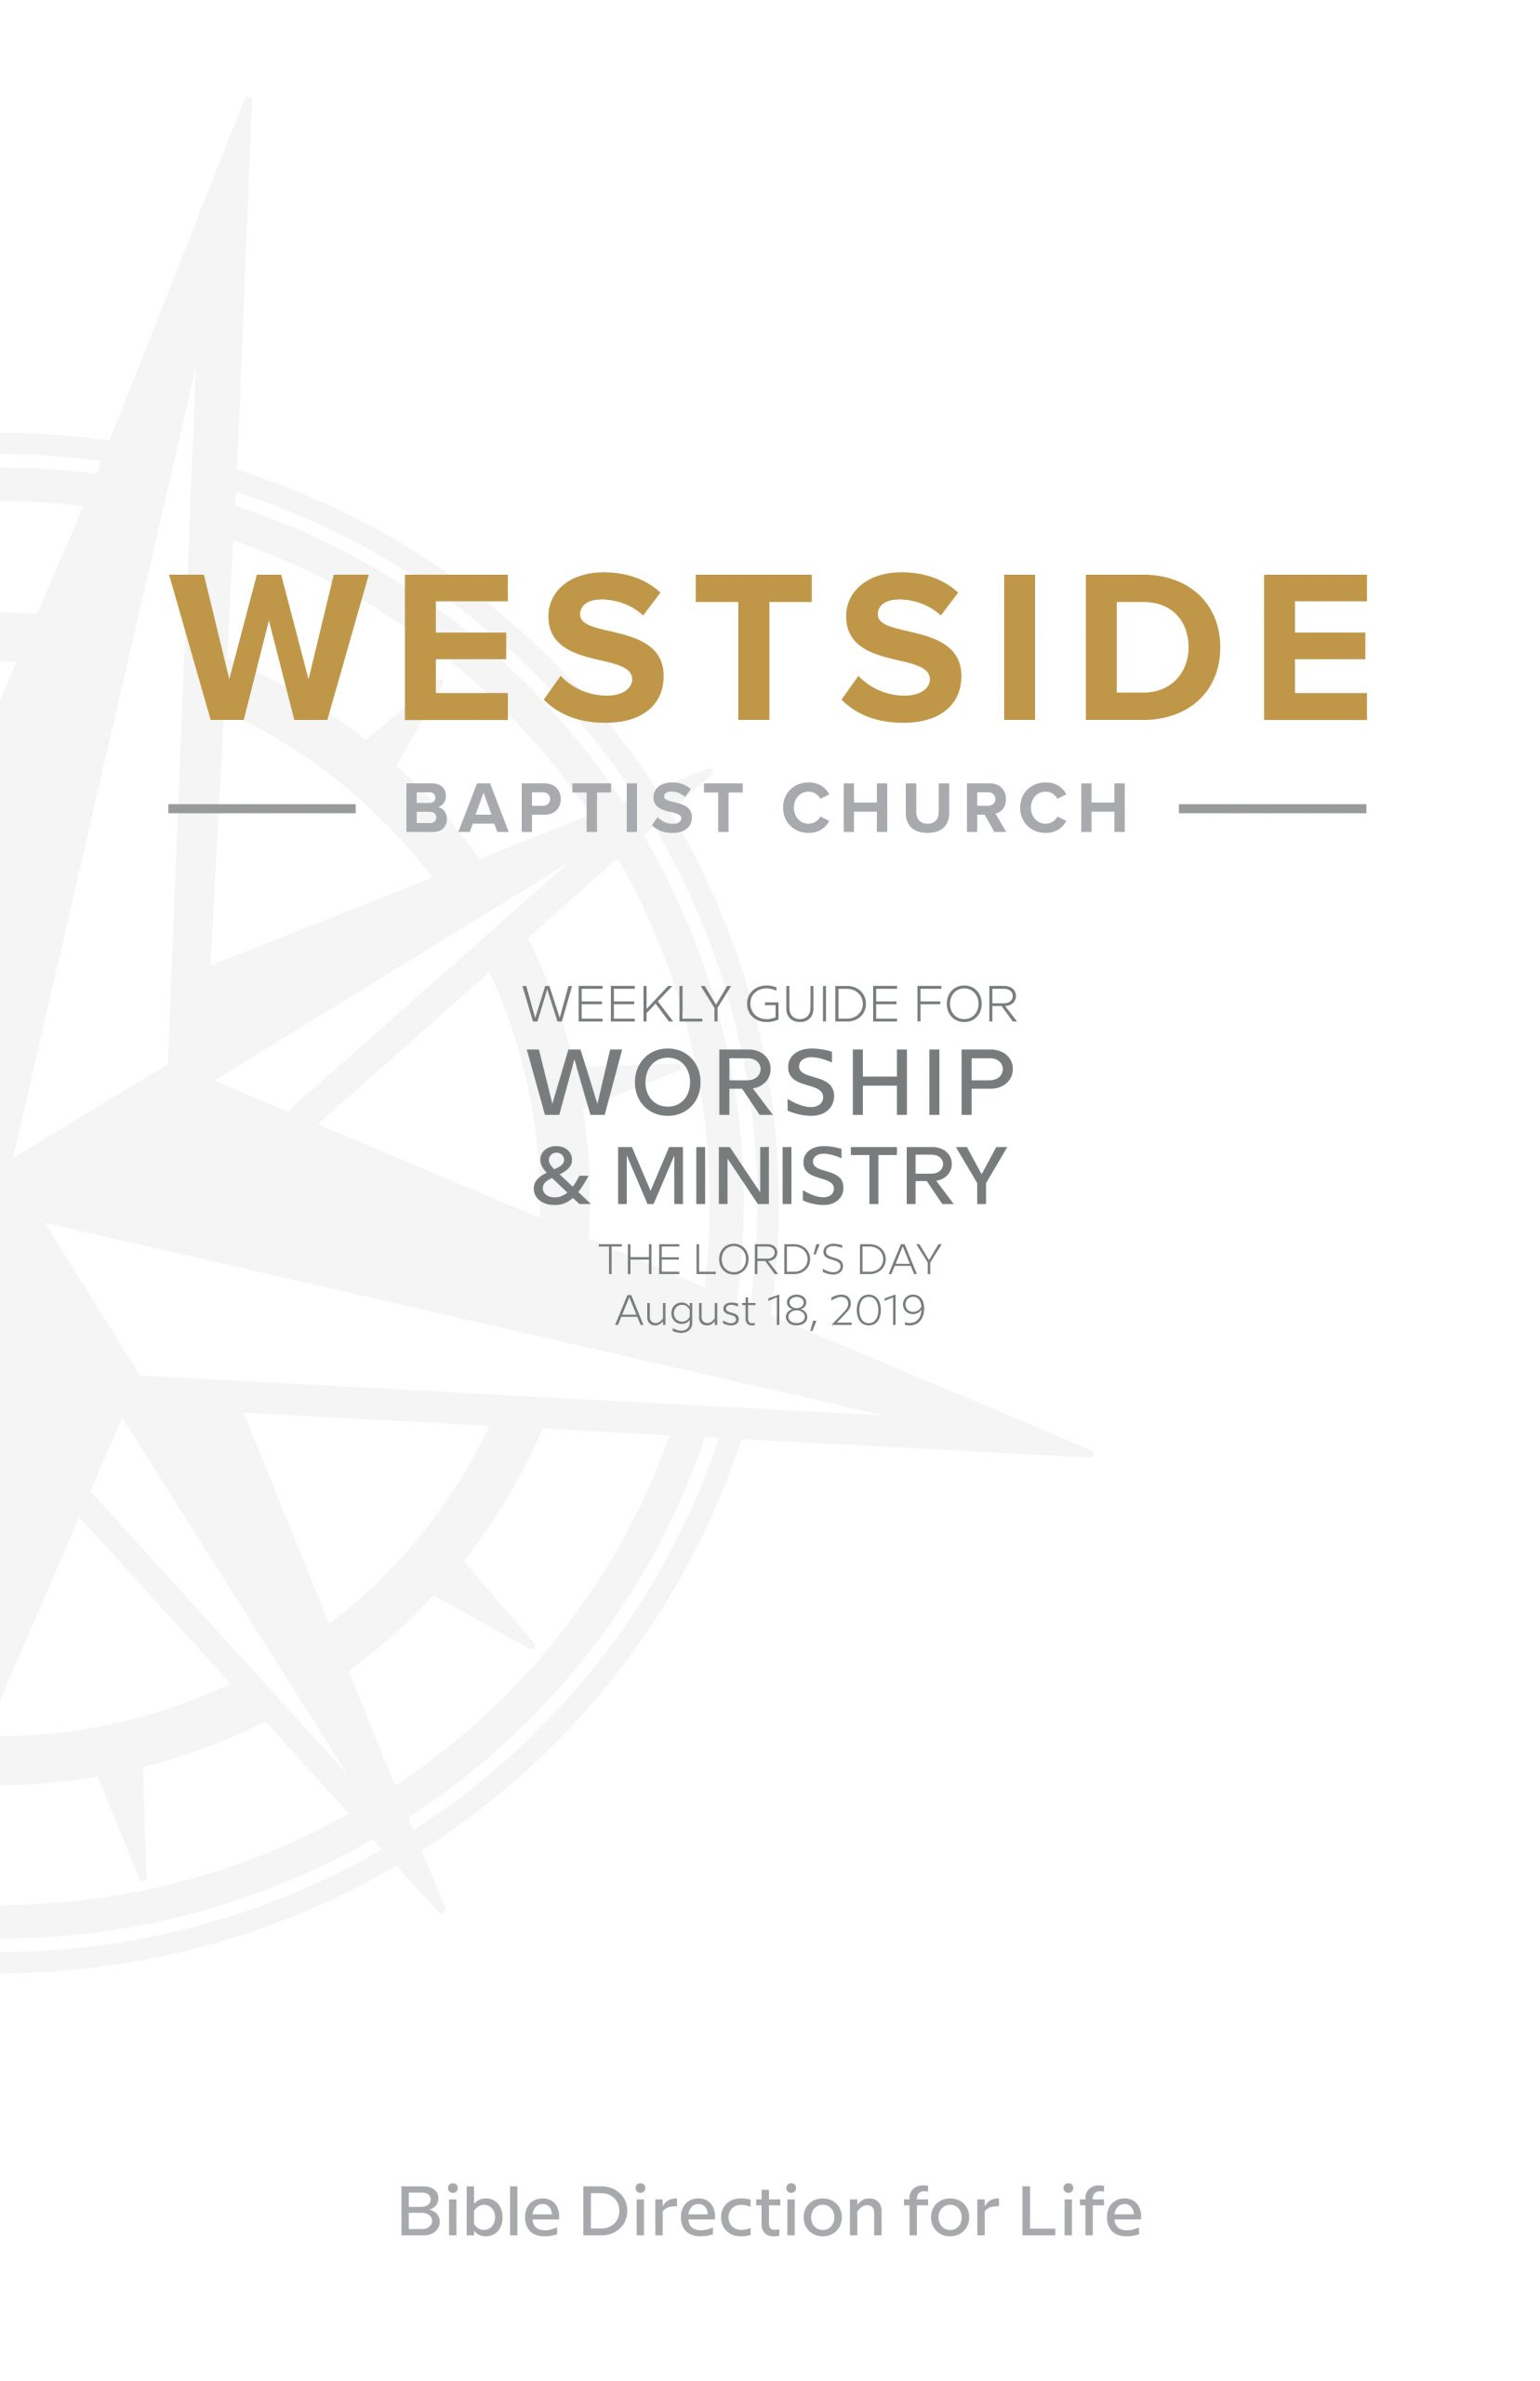 Weekly Guide for Worship and Ministry—August 18